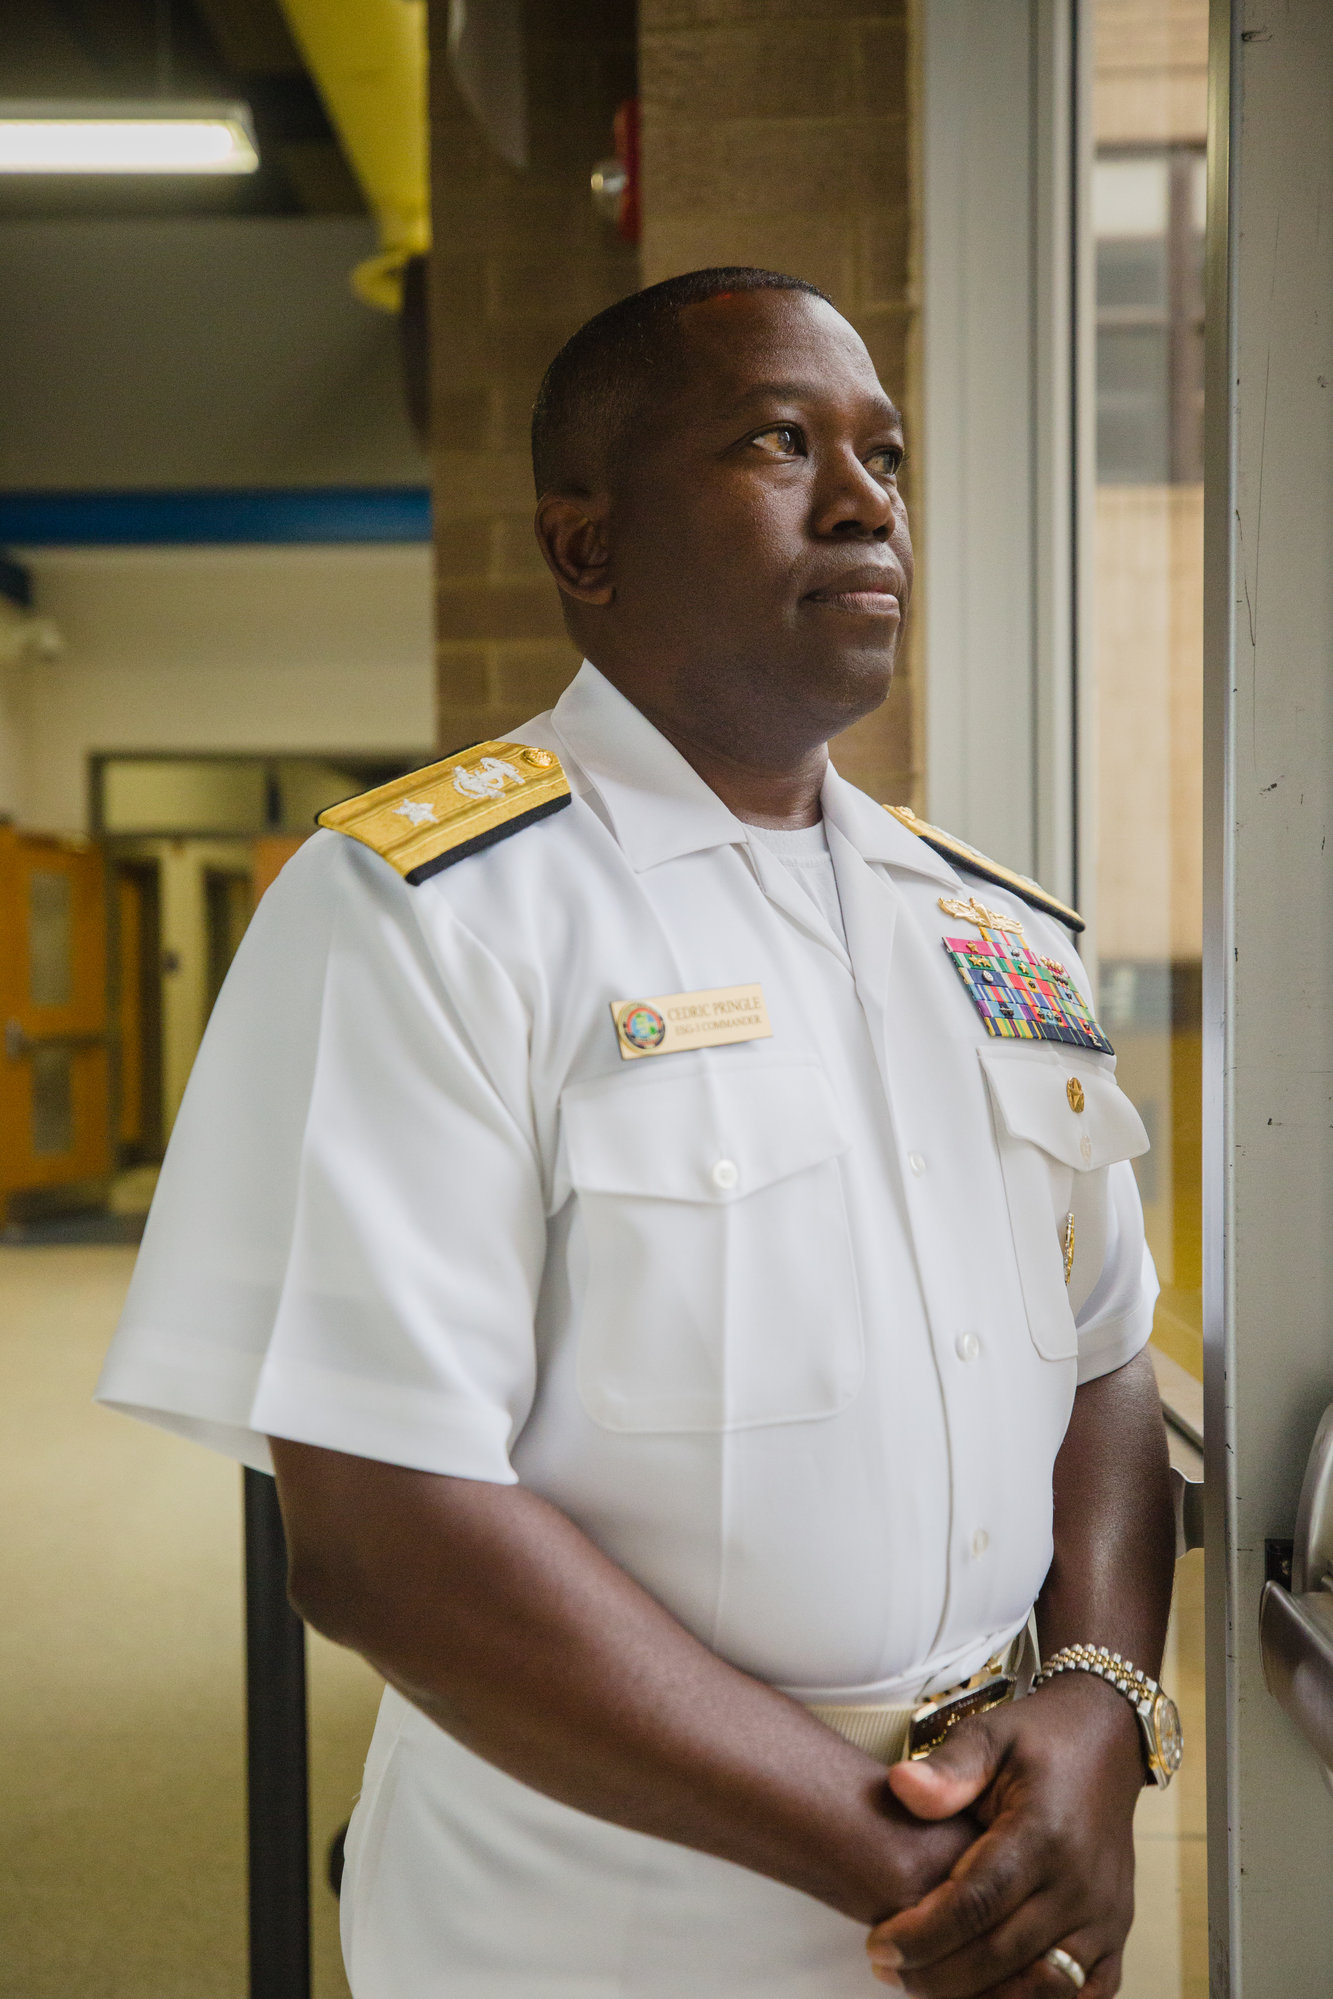 Rear Adm. Cedric Pringle visited Sumter High School, his alma mater, on Monday on a trip to promote careers in the Navy. He graduated from the school in 1986 and said students interested in STEM fields might be a good fit in the Navy.